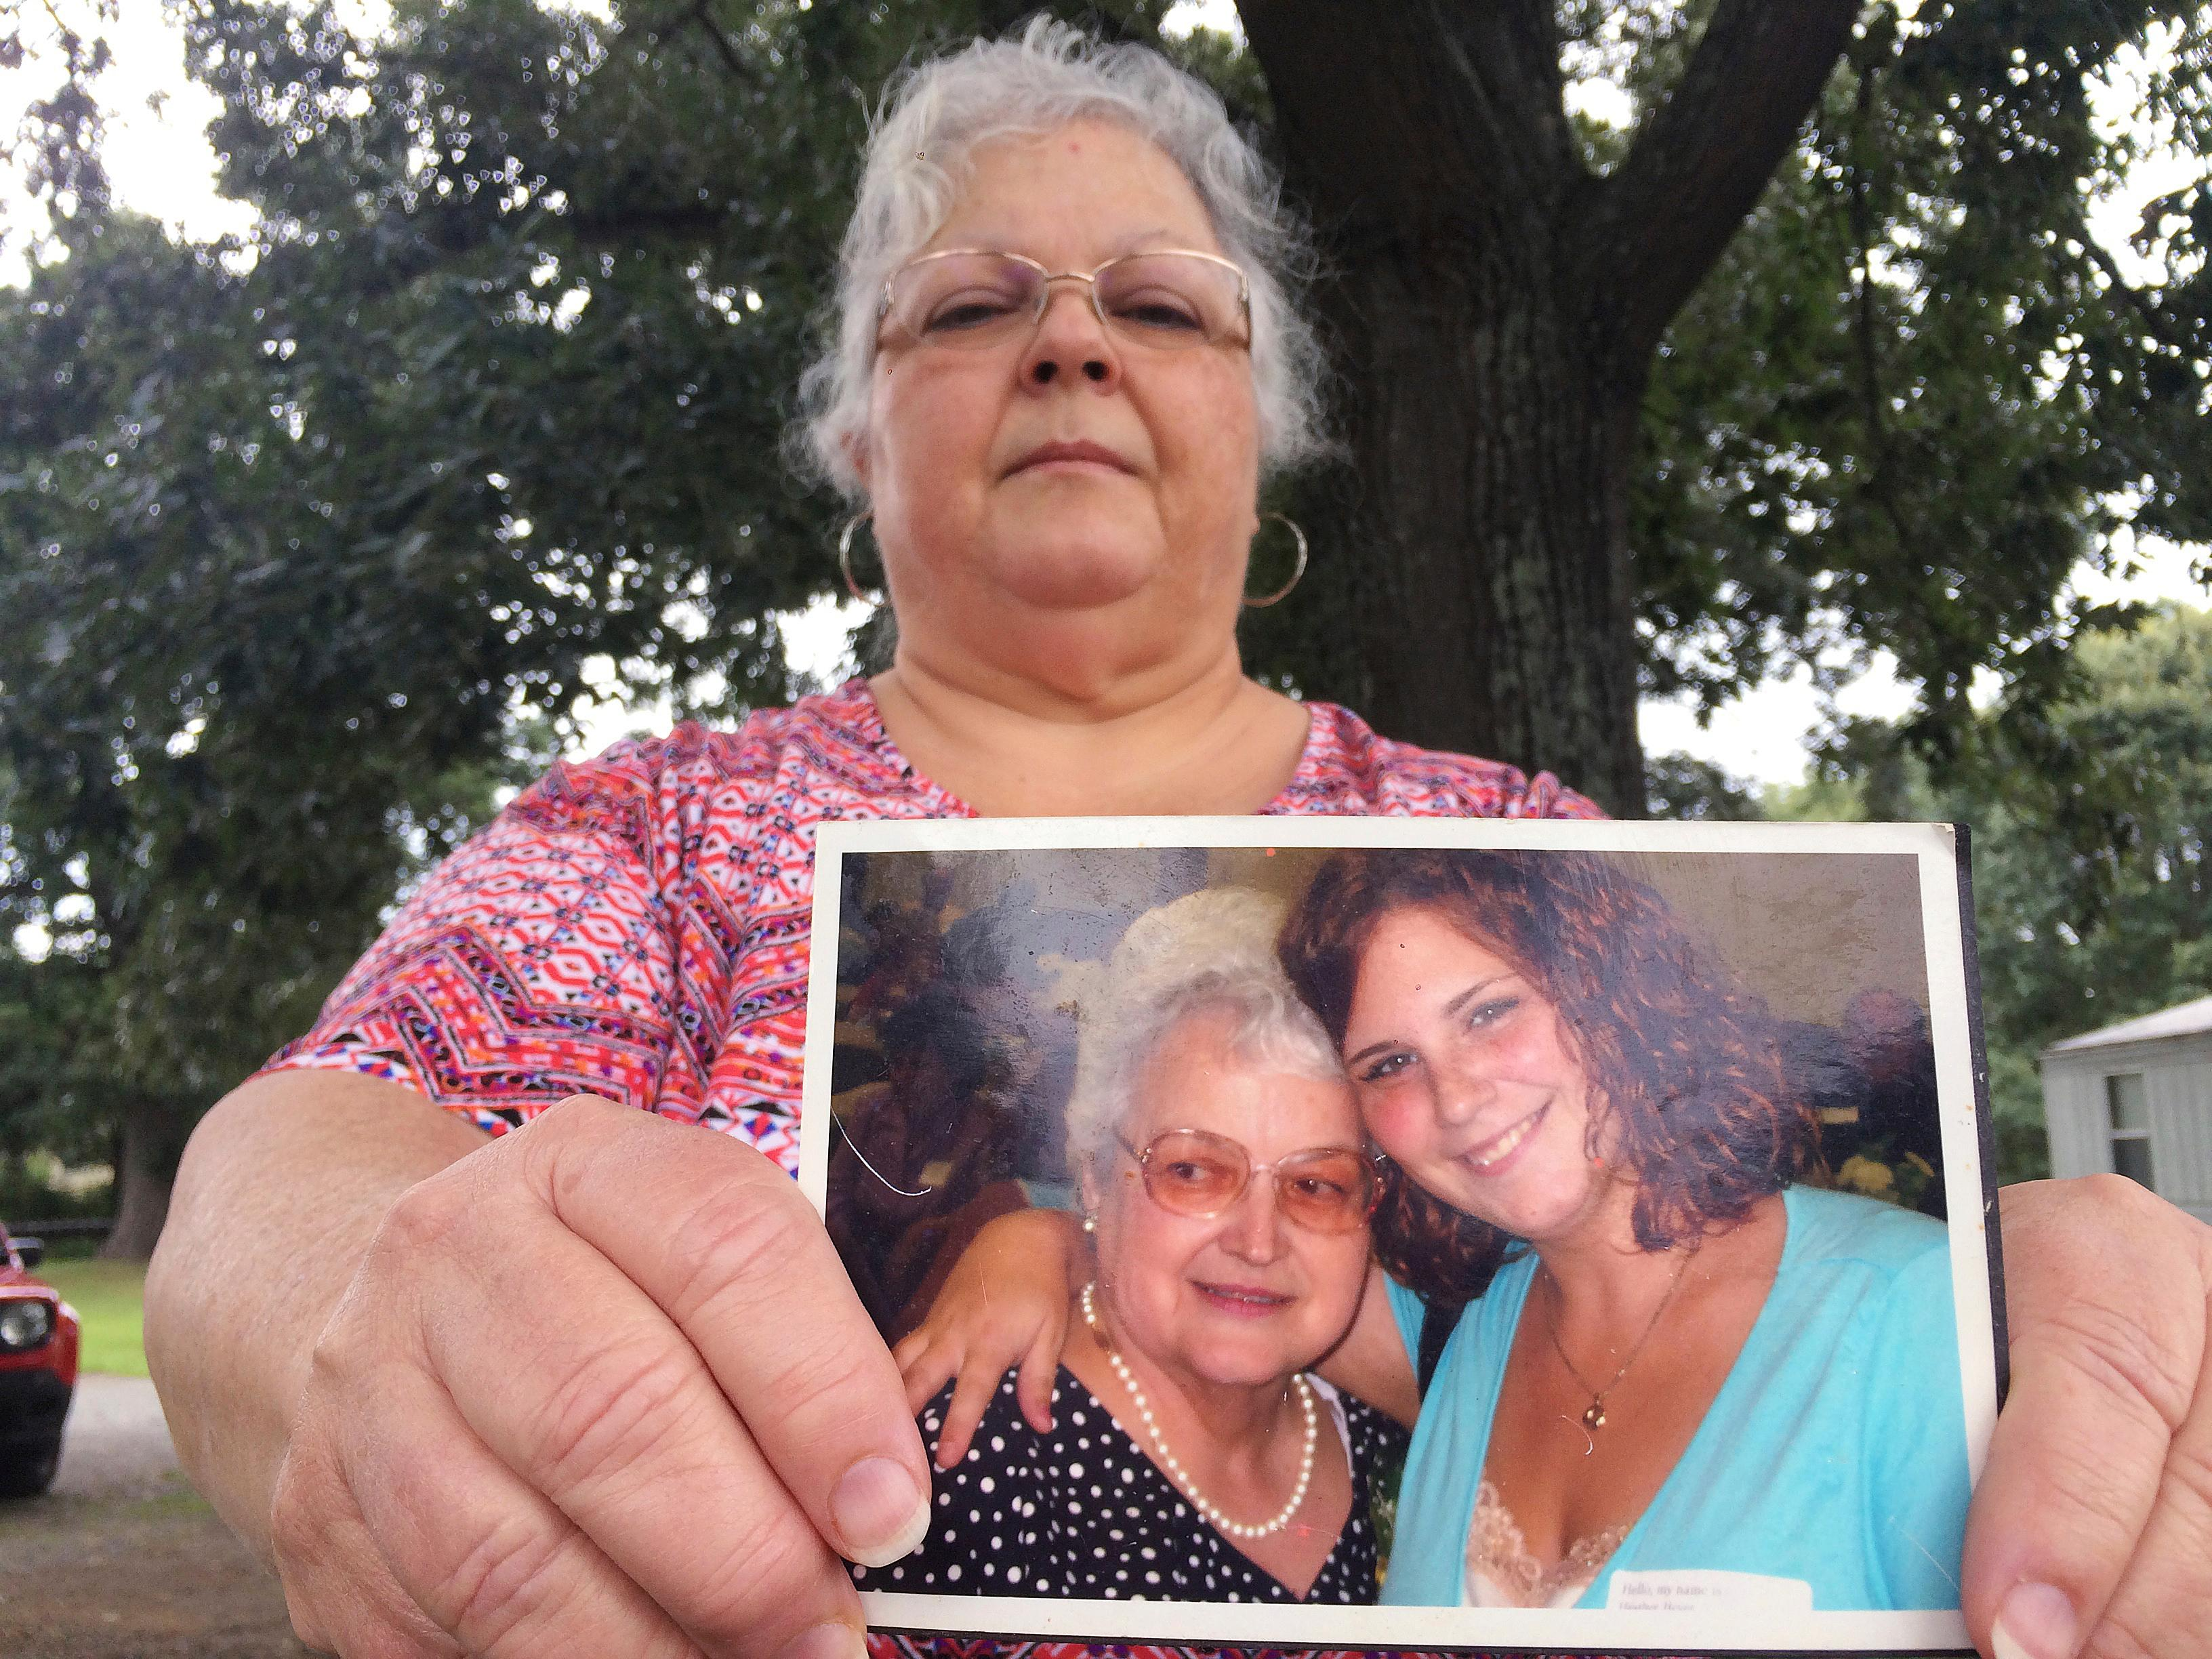 FILE- In this Aug. 14, 2017 file photo, Susan Bro, the mother of Heather Heyer, holds a photo of Bro's mother and her daughter.{ } (AP Photo/Joshua Replogle, File)